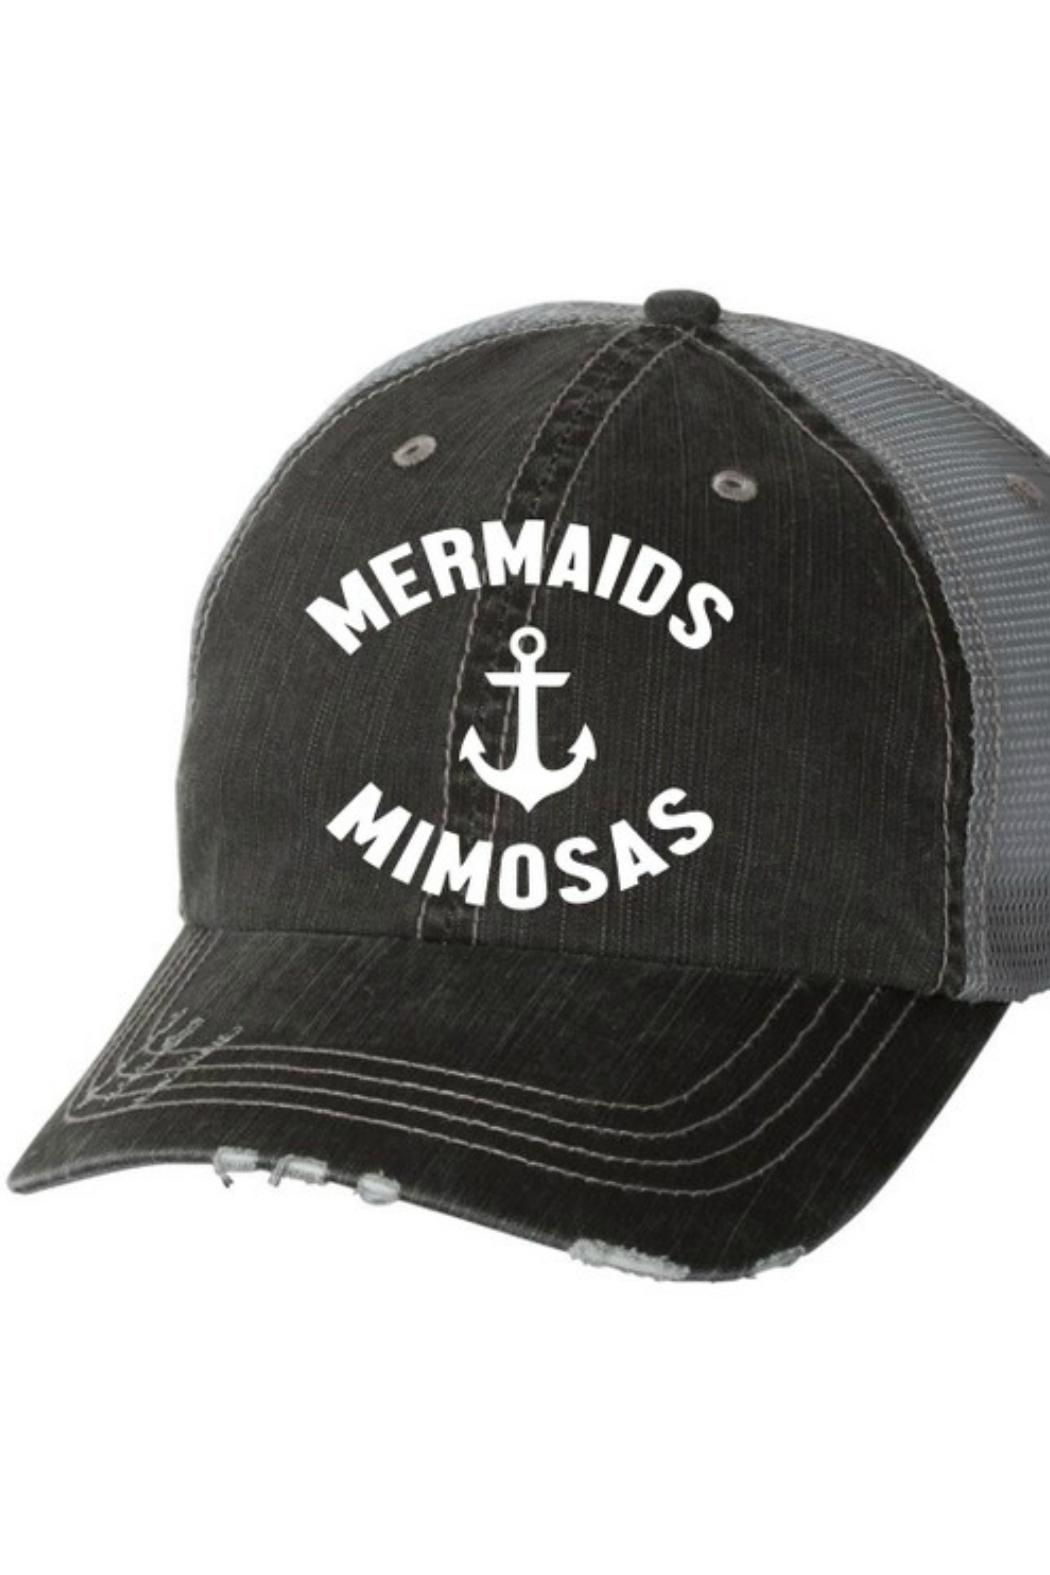 Imagine That Mermaids Mimosas Hat - Main Image